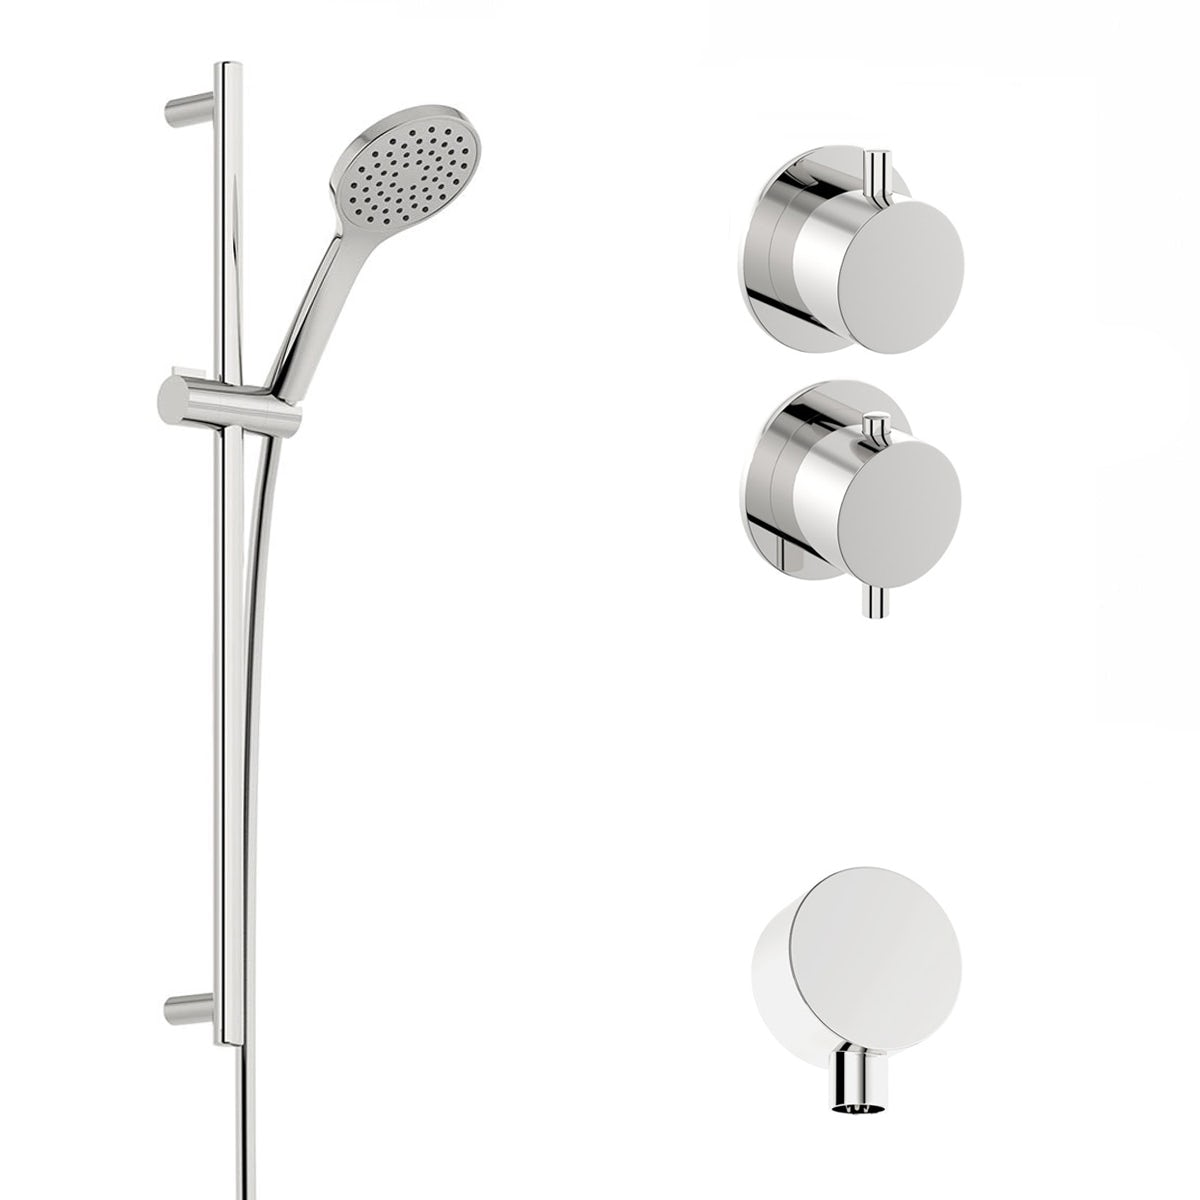 Mode Hardy thermostatic twin shower valve and slider rail set